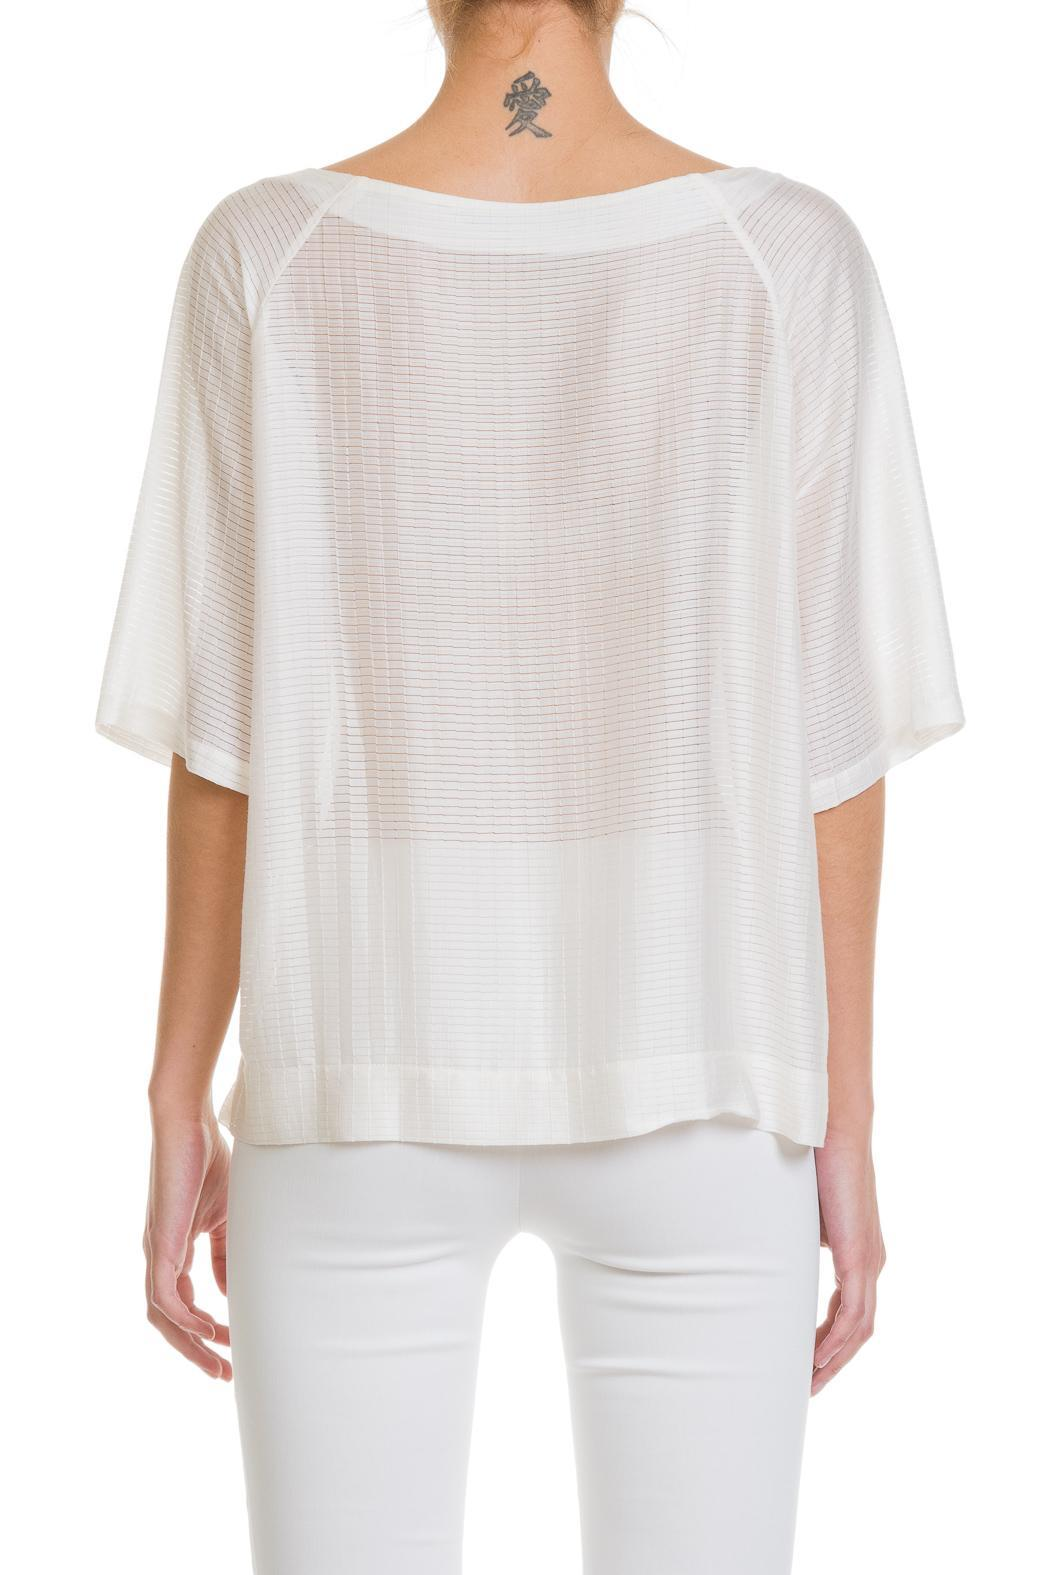 White Short Sleeved Blouse